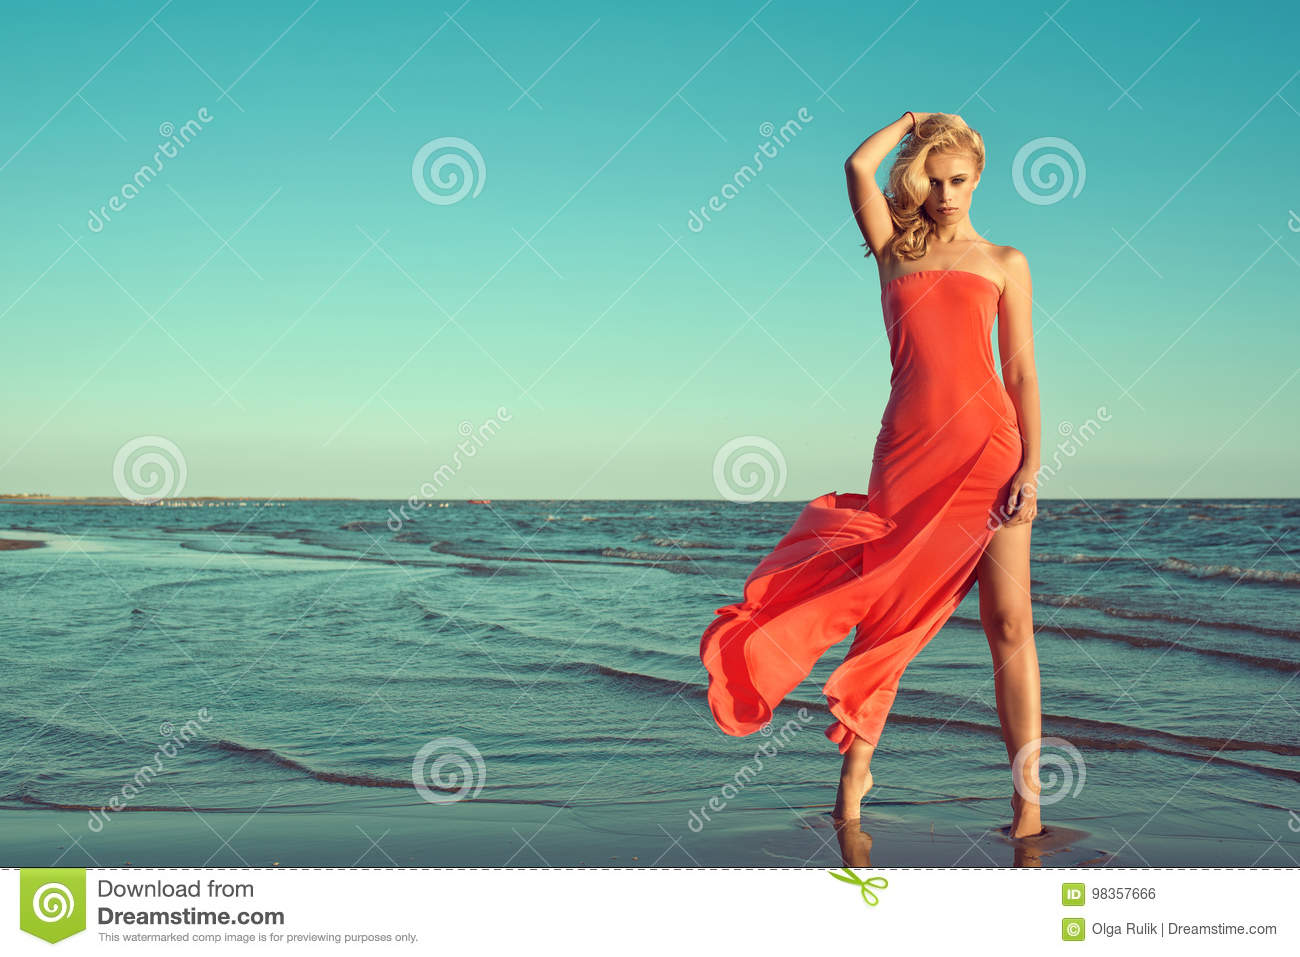 Gorgeous slim blond model in red strapless dress with flying train standing on tiptoe in the sea water